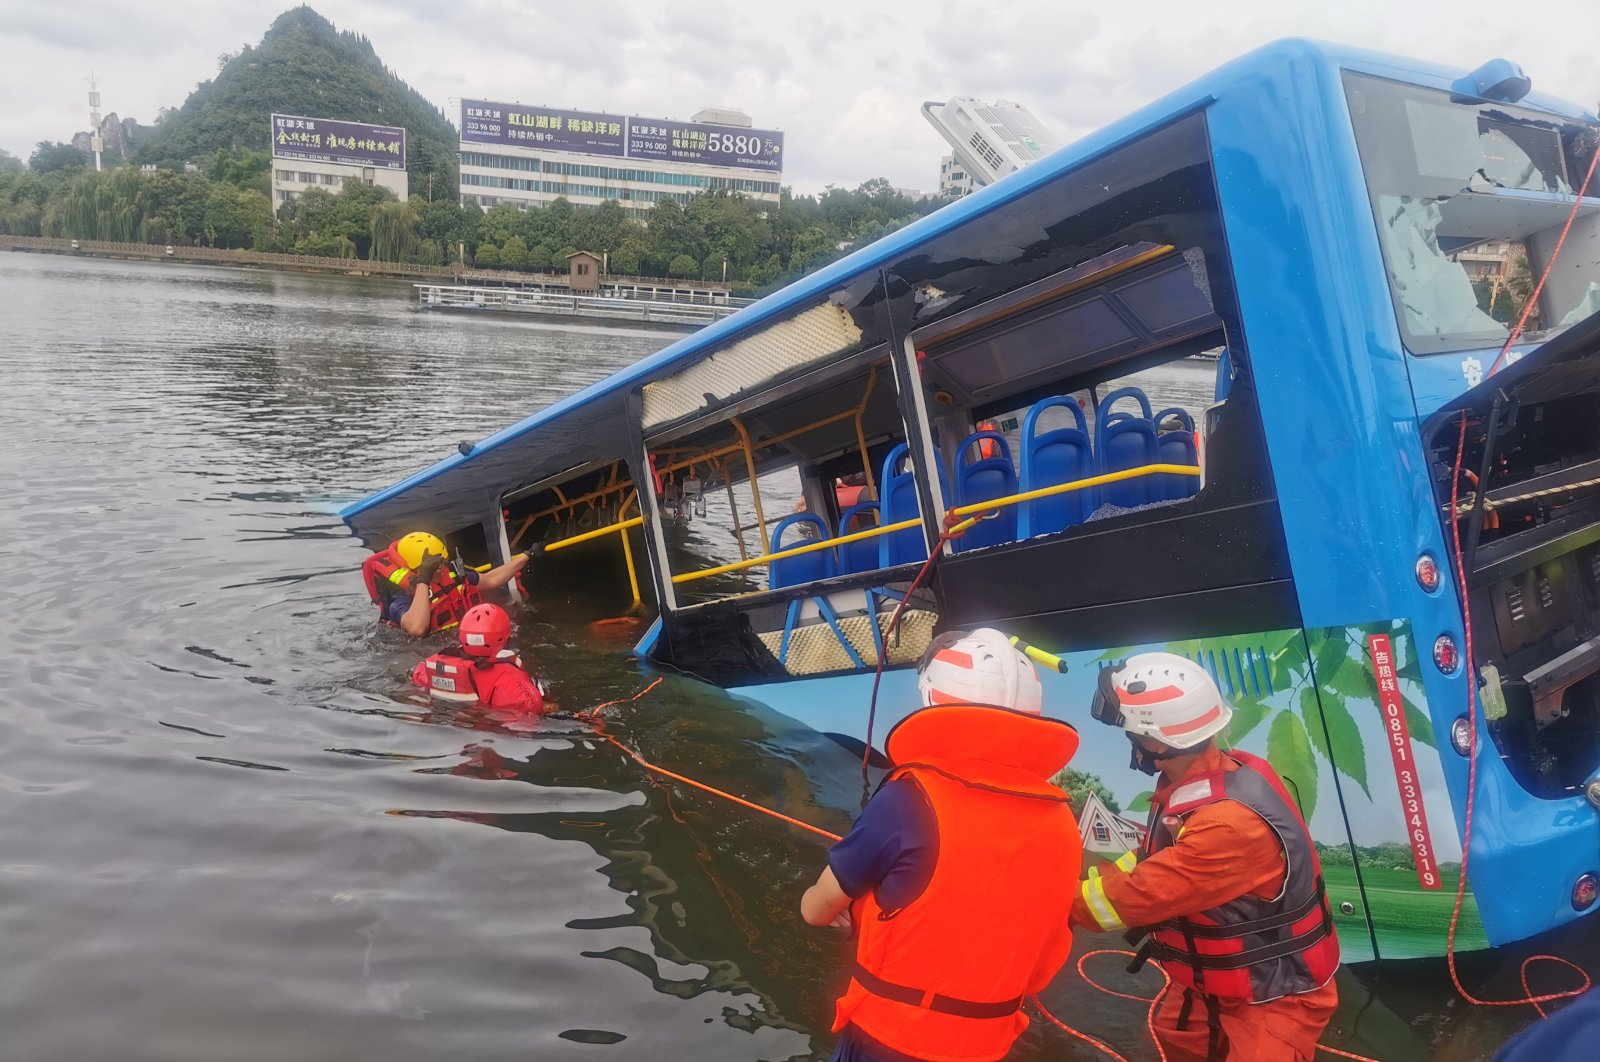 Rescue workers are seen at the site where a bus carrying students plunged into a reservoir, in Anshun, Guizhou province, China, July 7, 2020. (China Daily Photo via Reuters)